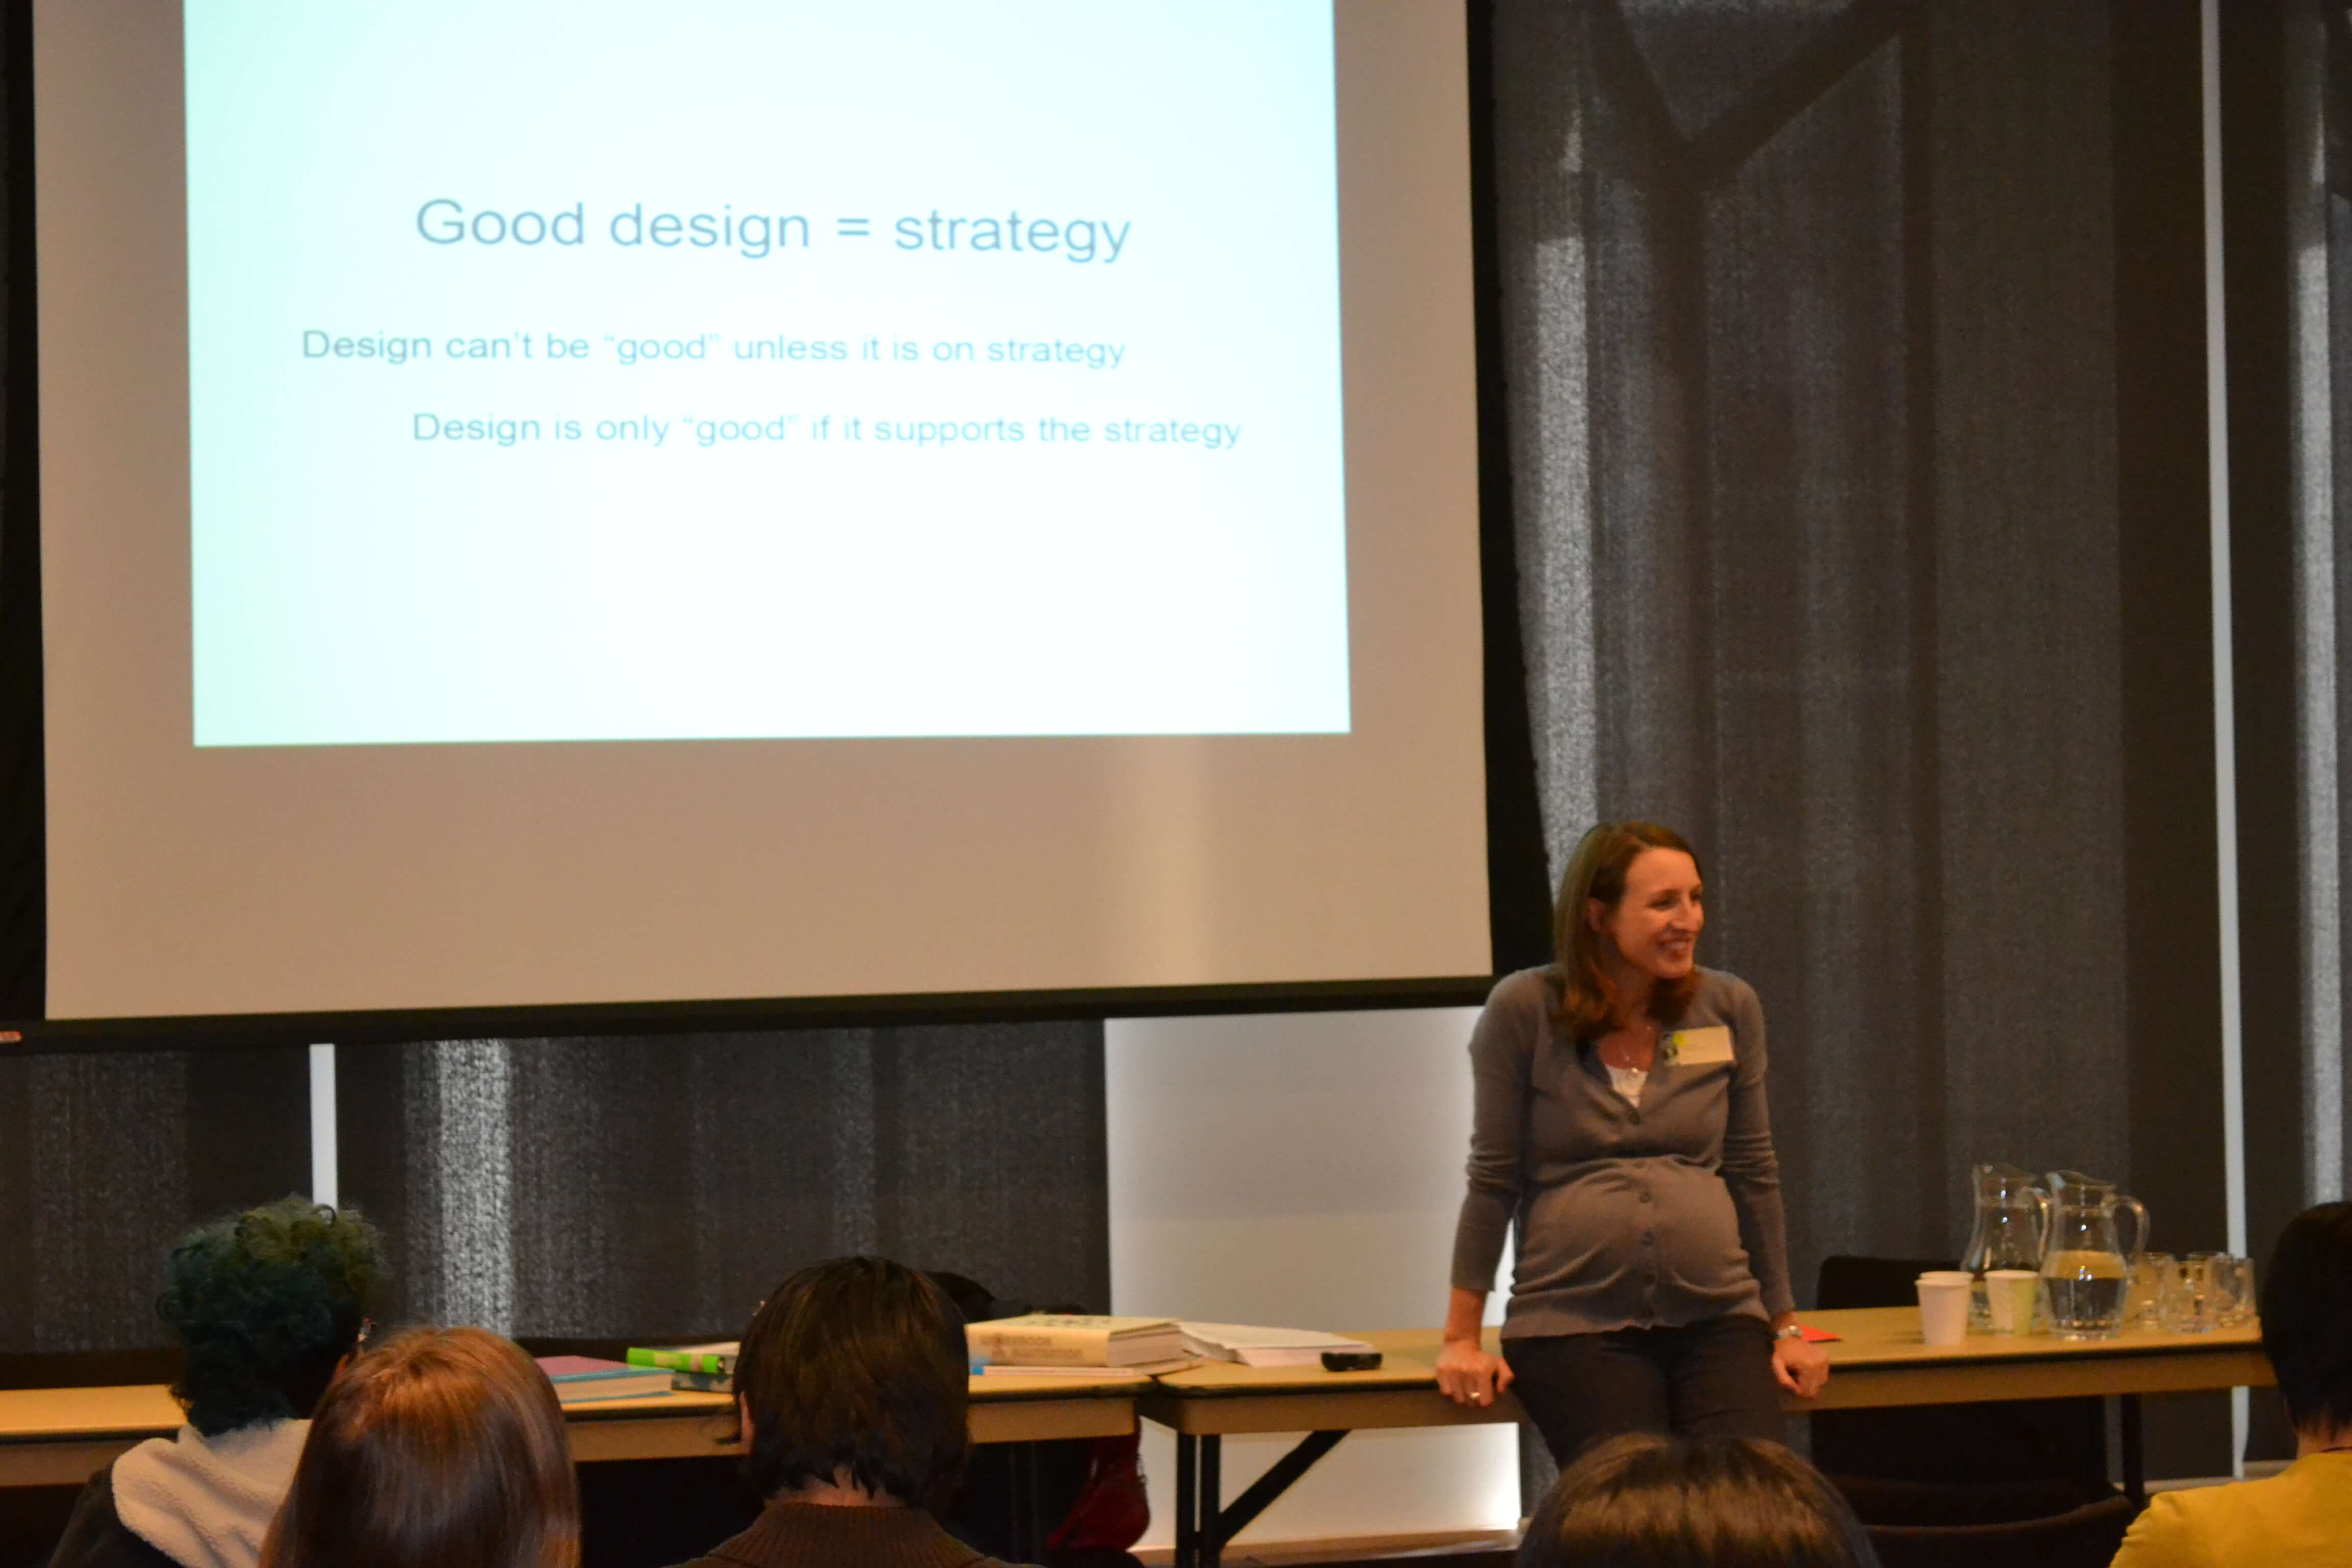 An image of Laura Sellors standing in front of a Good design = strategy slide